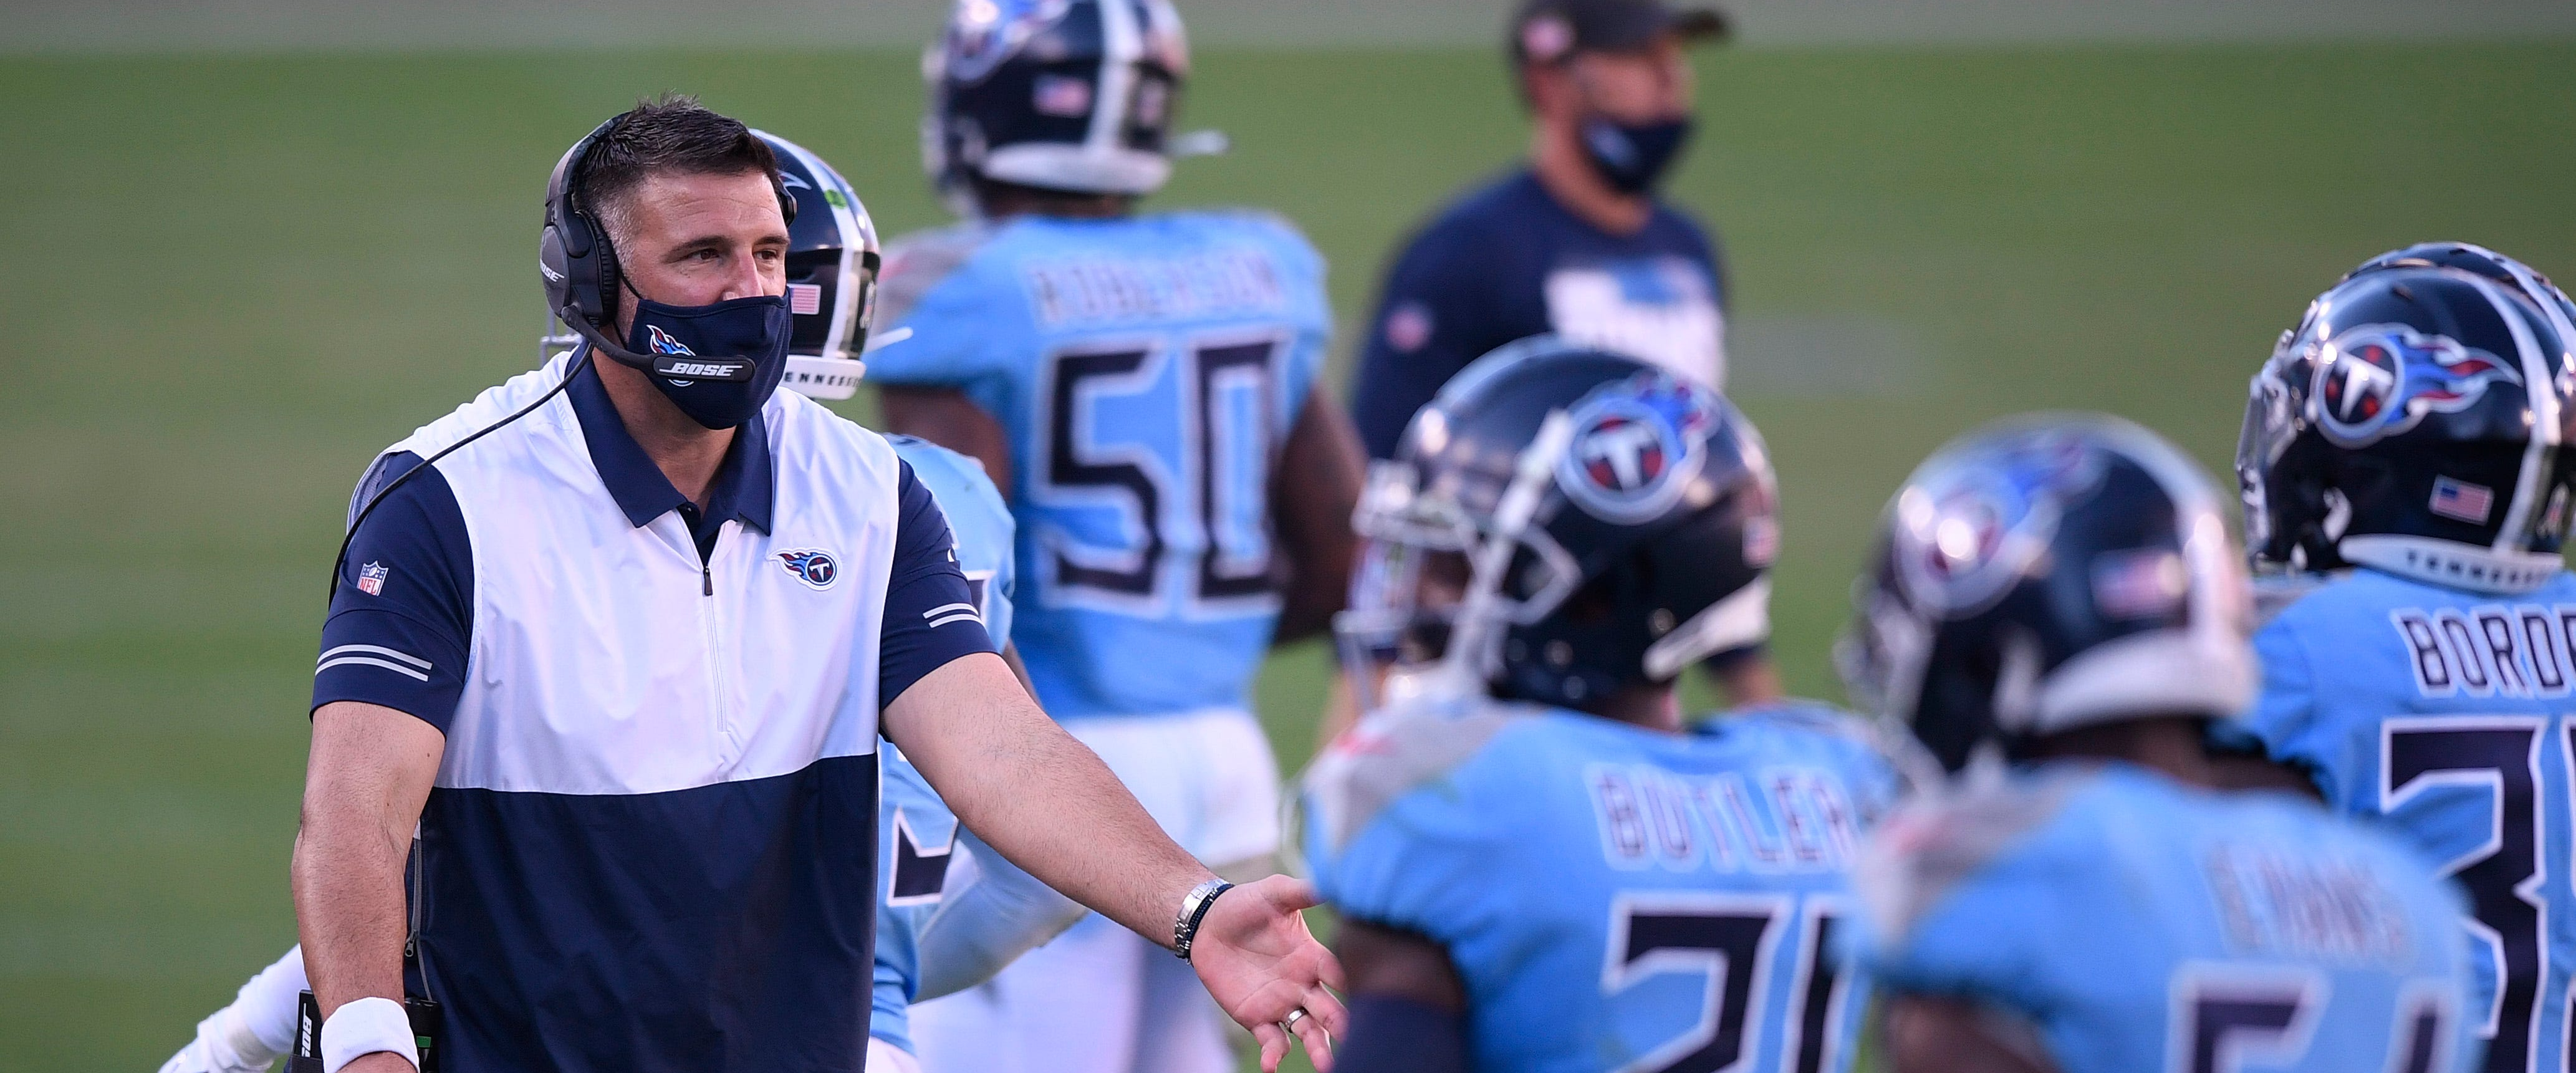 Missing key players, the Titans prepare for the Browns